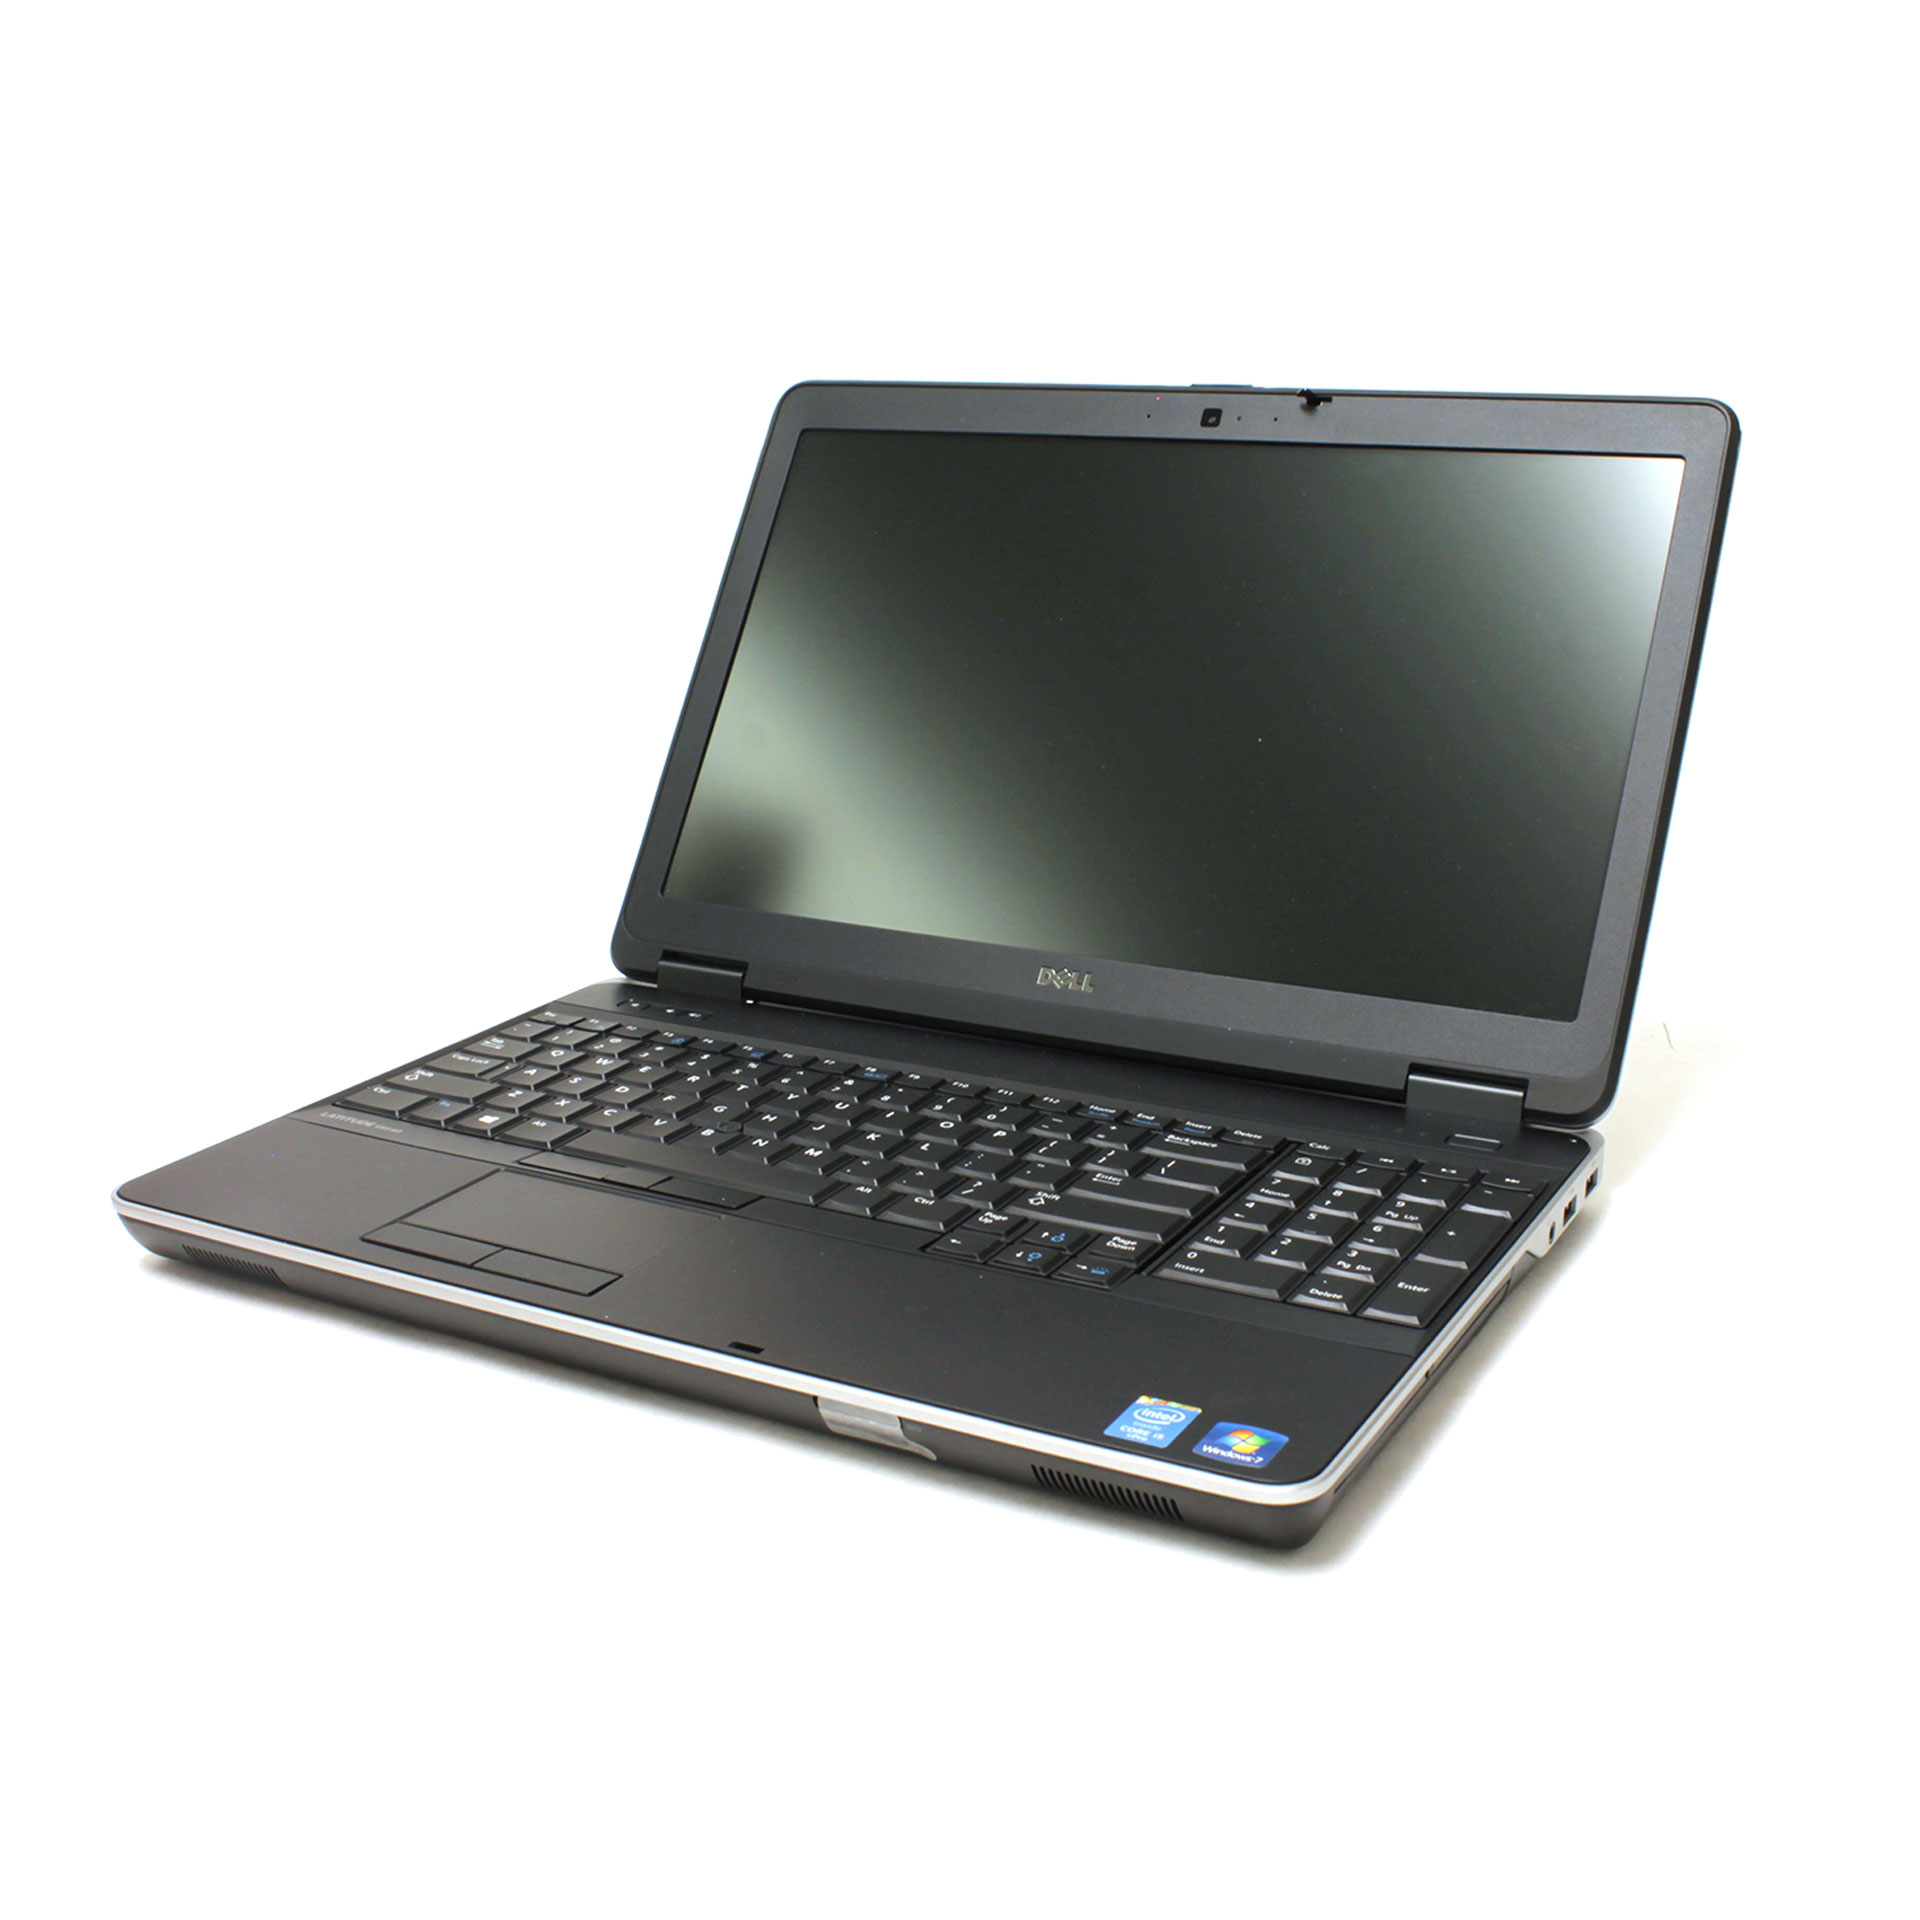 "Dell Latitude E6540 15.6"" Core i5-4310M 4GB RAM 320GB SSD 5TNKM"